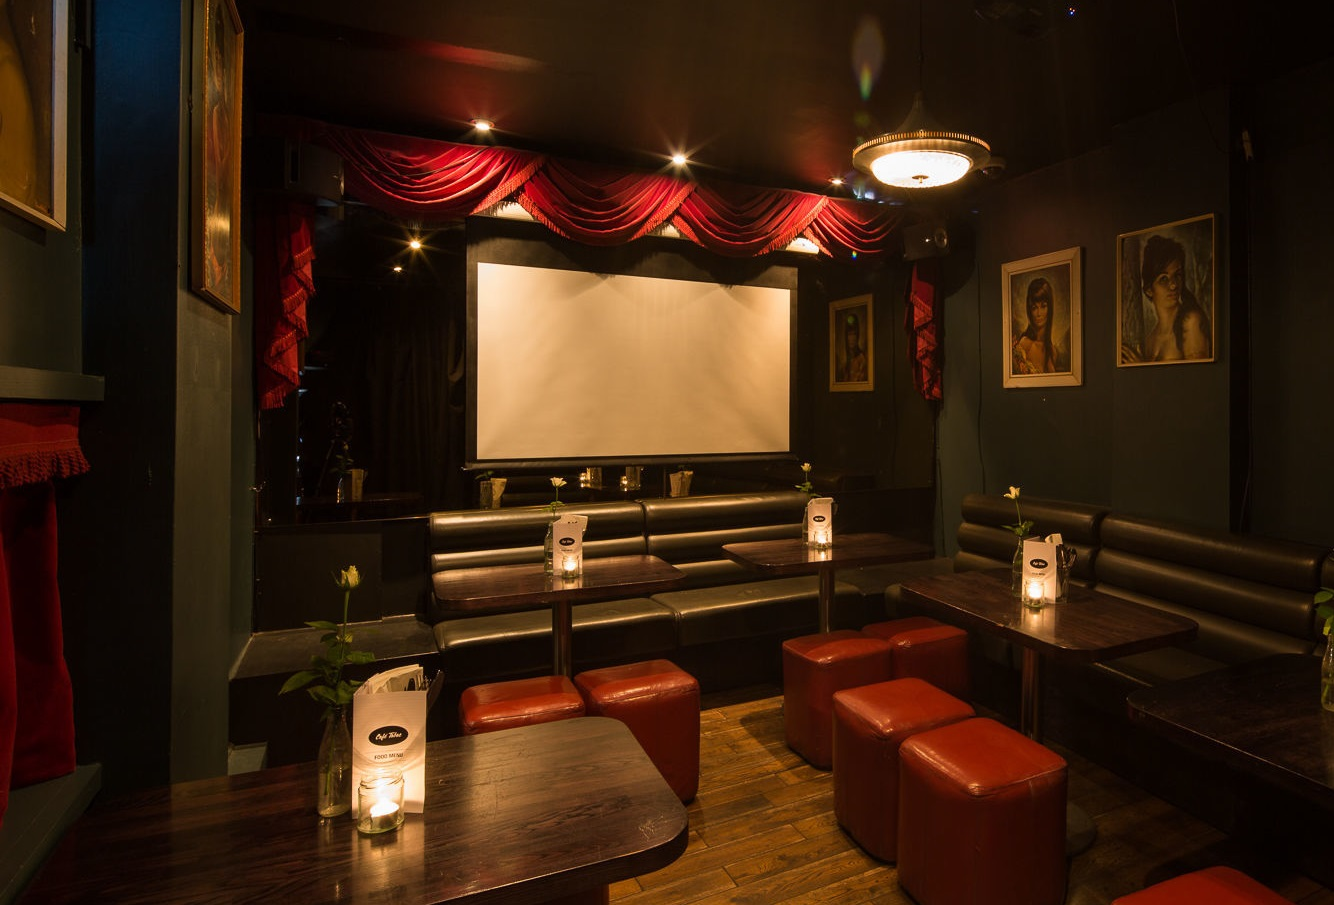 Cafe Tabac - hidden cinema venues in Liverpool